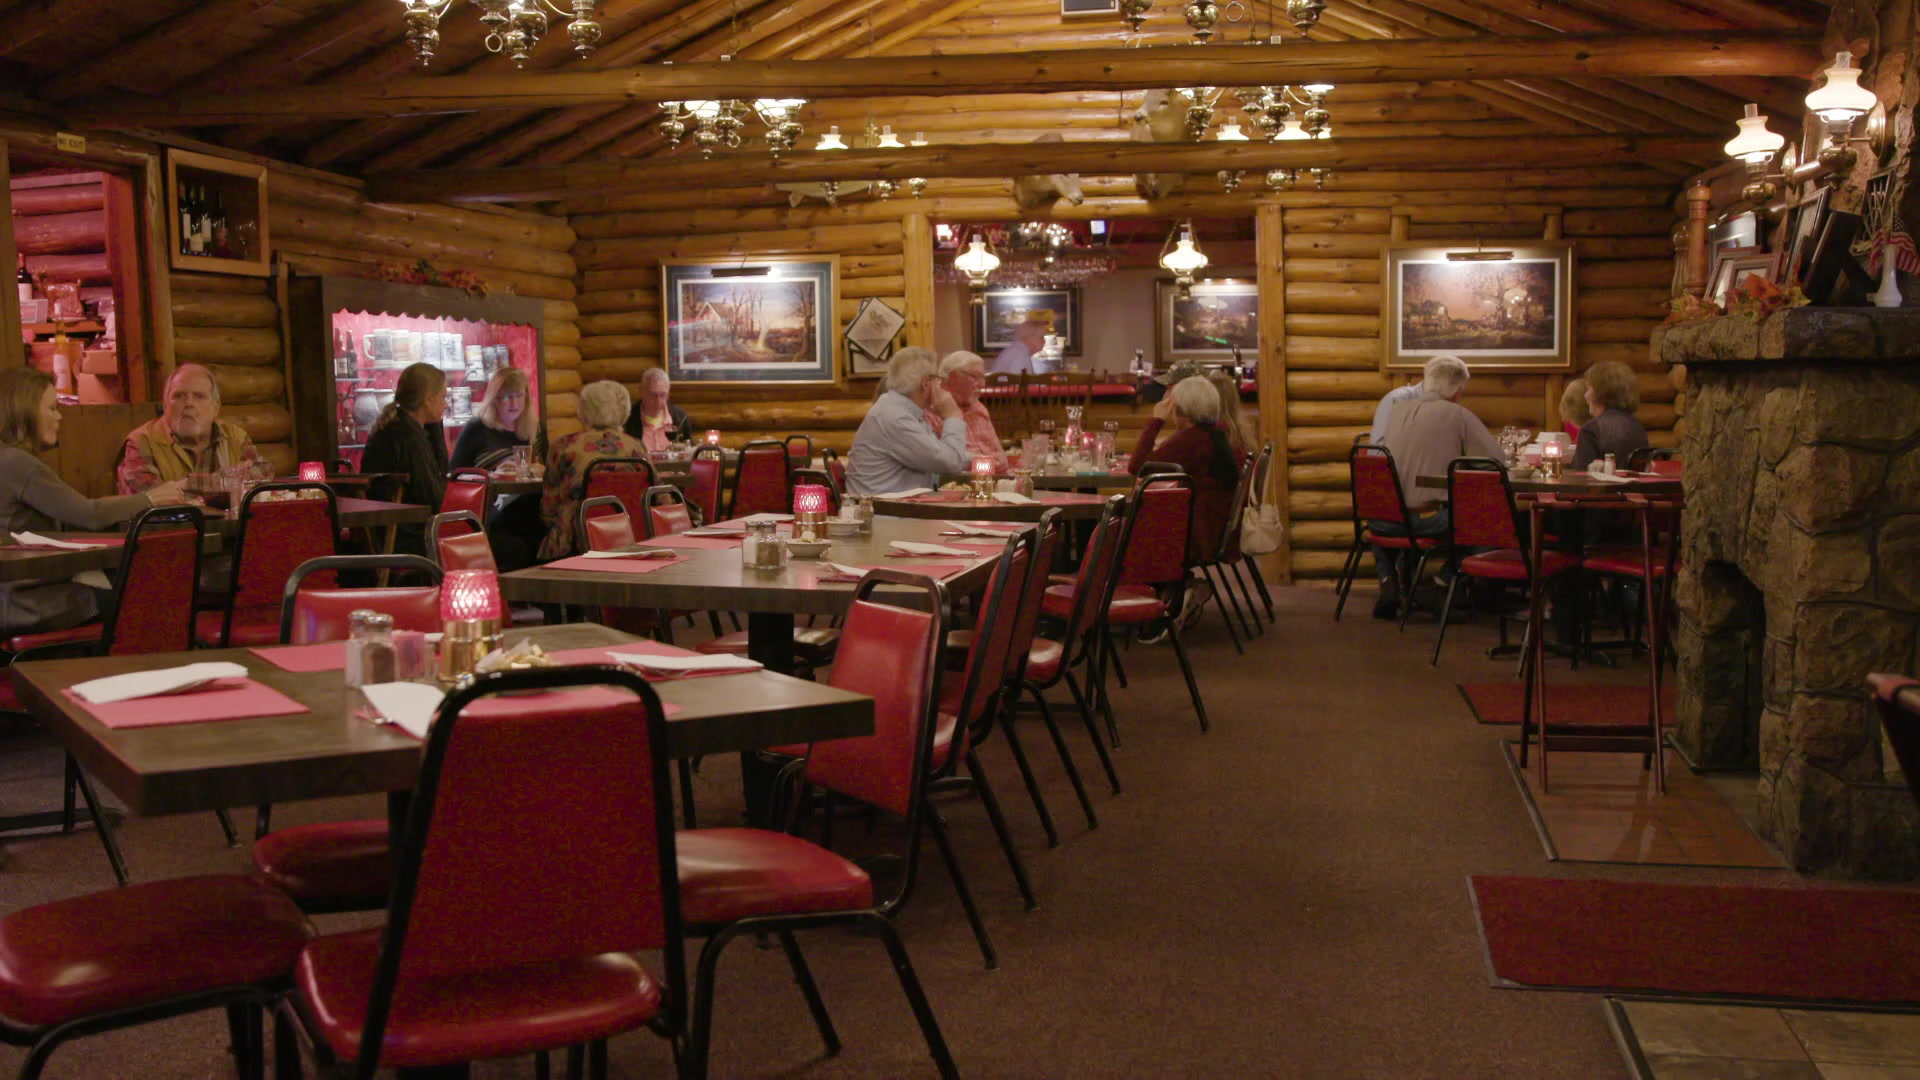 Dinners sit on red chairs and at tables inside a dining room with log walls and a stone fireplace at right.